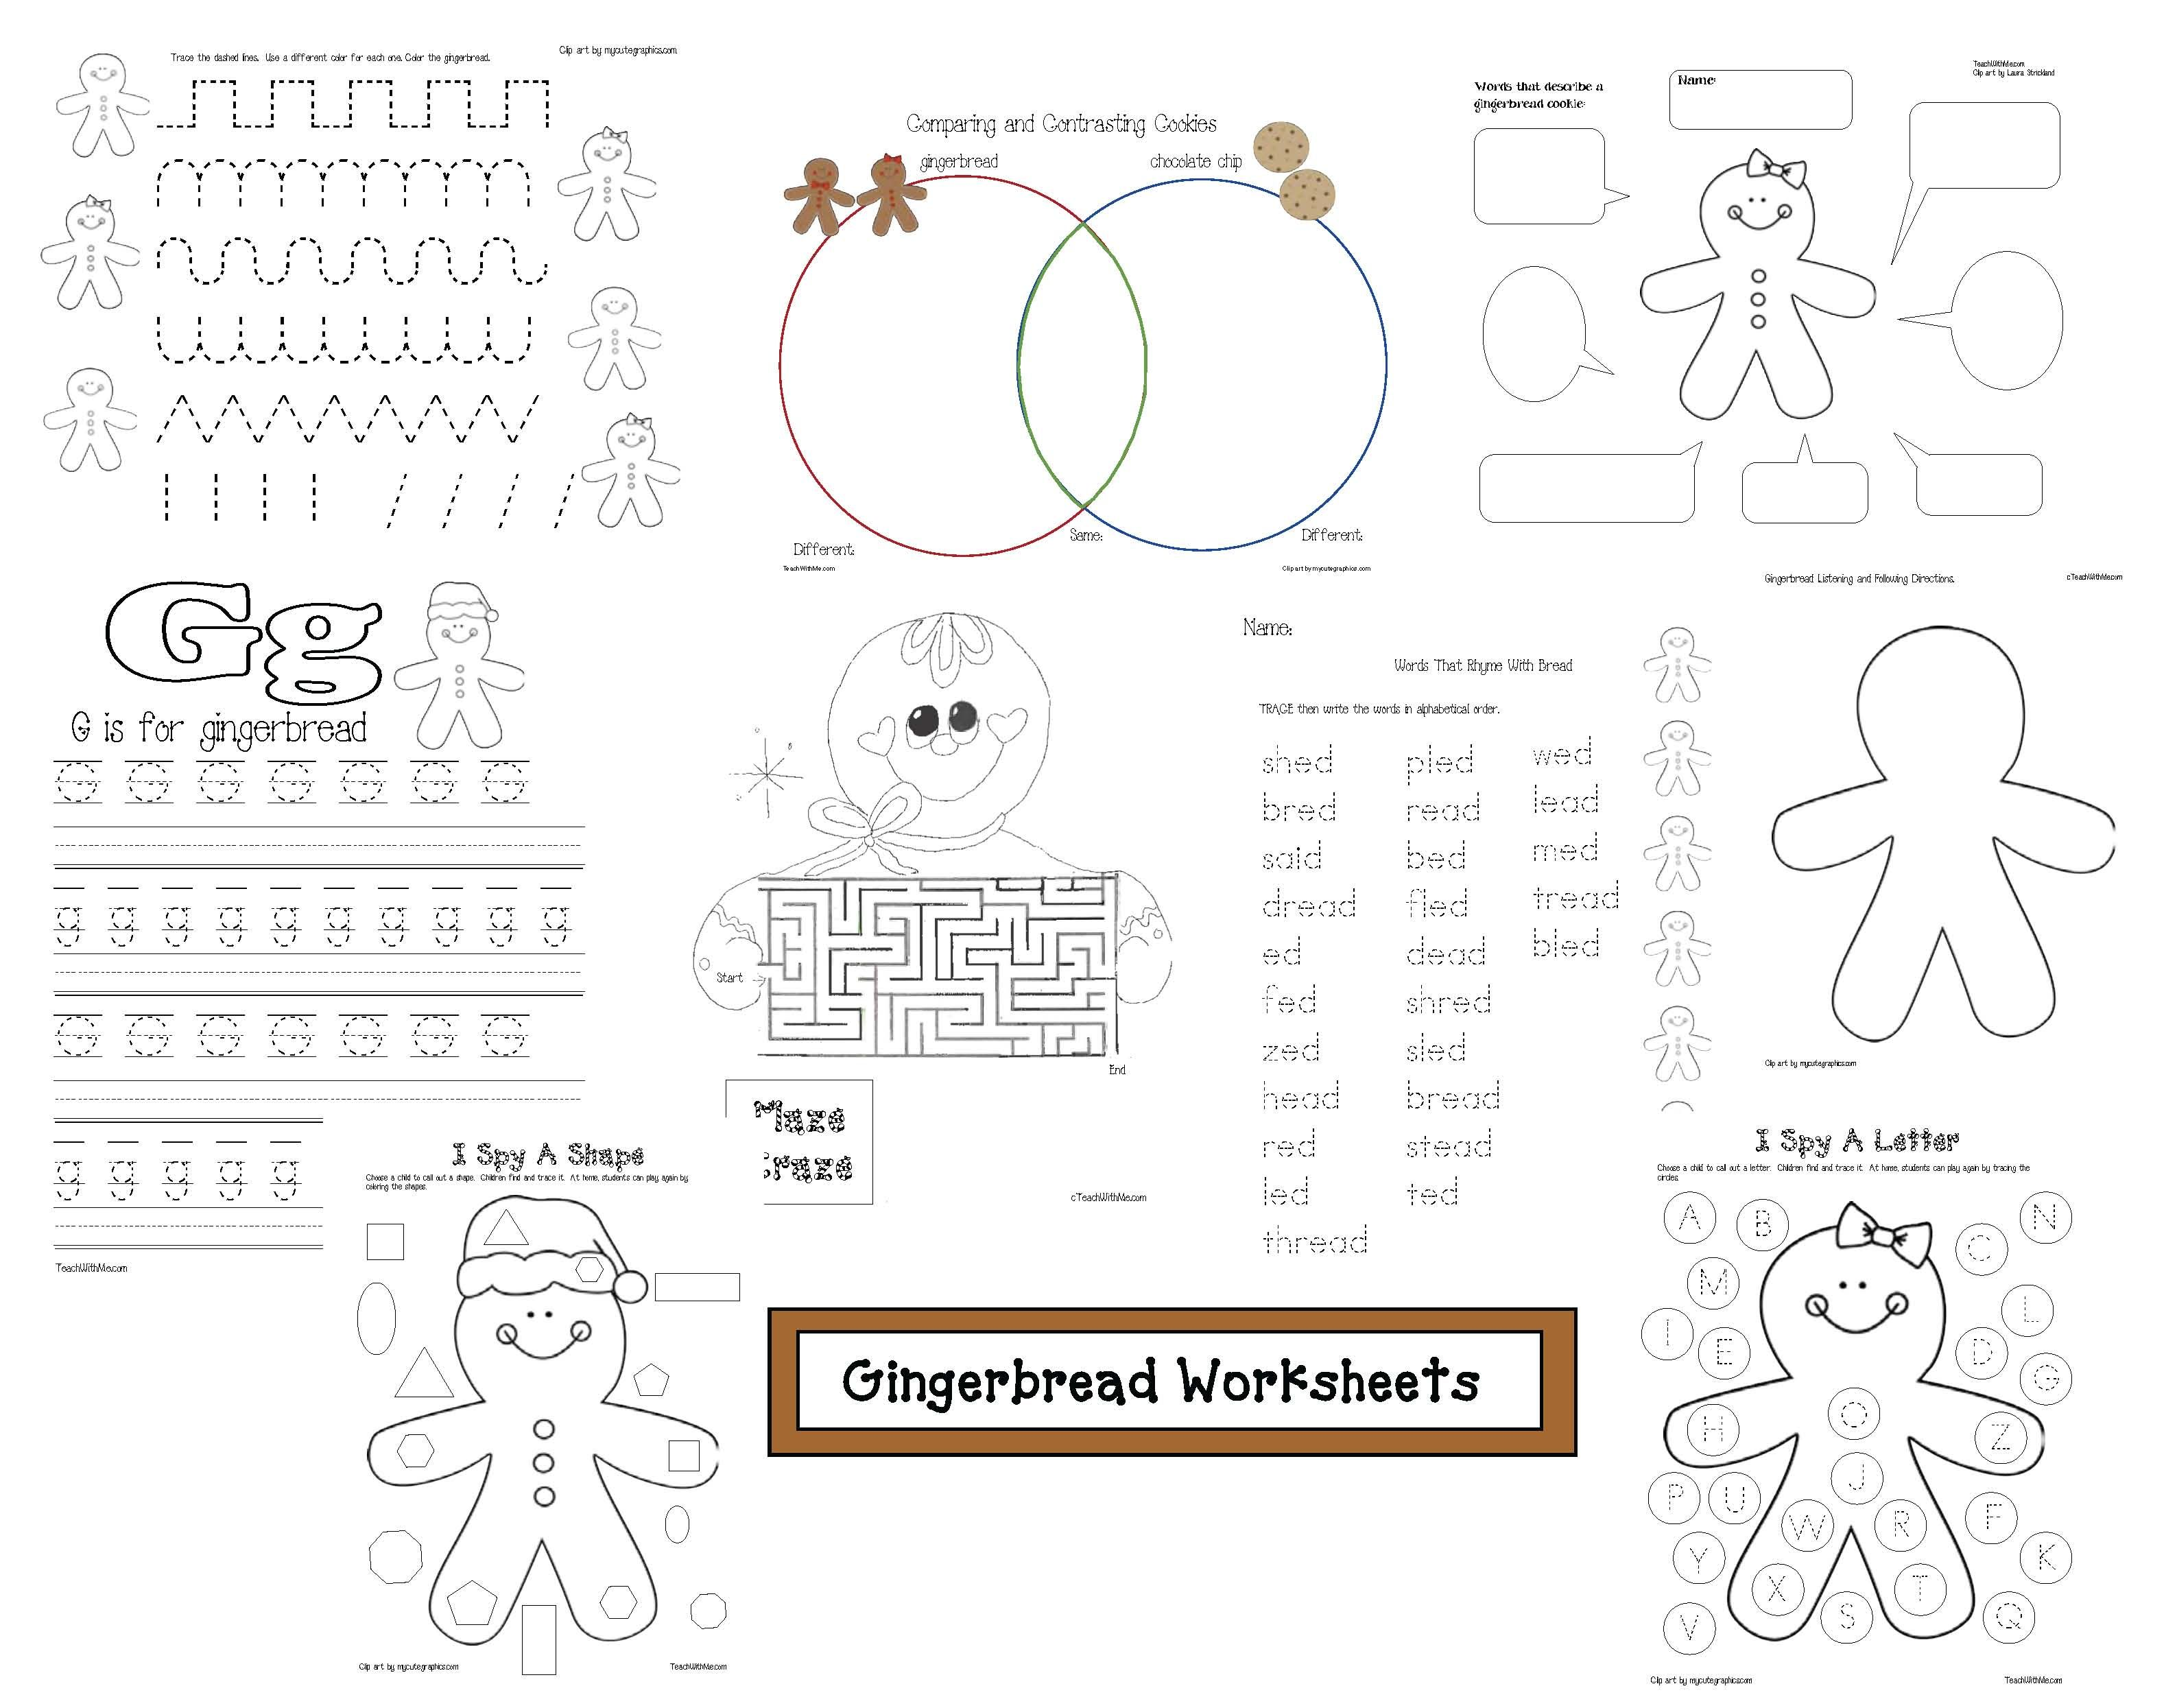 worksheet I Spy Worksheets worksheets i spy tokyoobserver just another wordpress site glyphs free gingerbread glyph alphabet games a letter worksheets